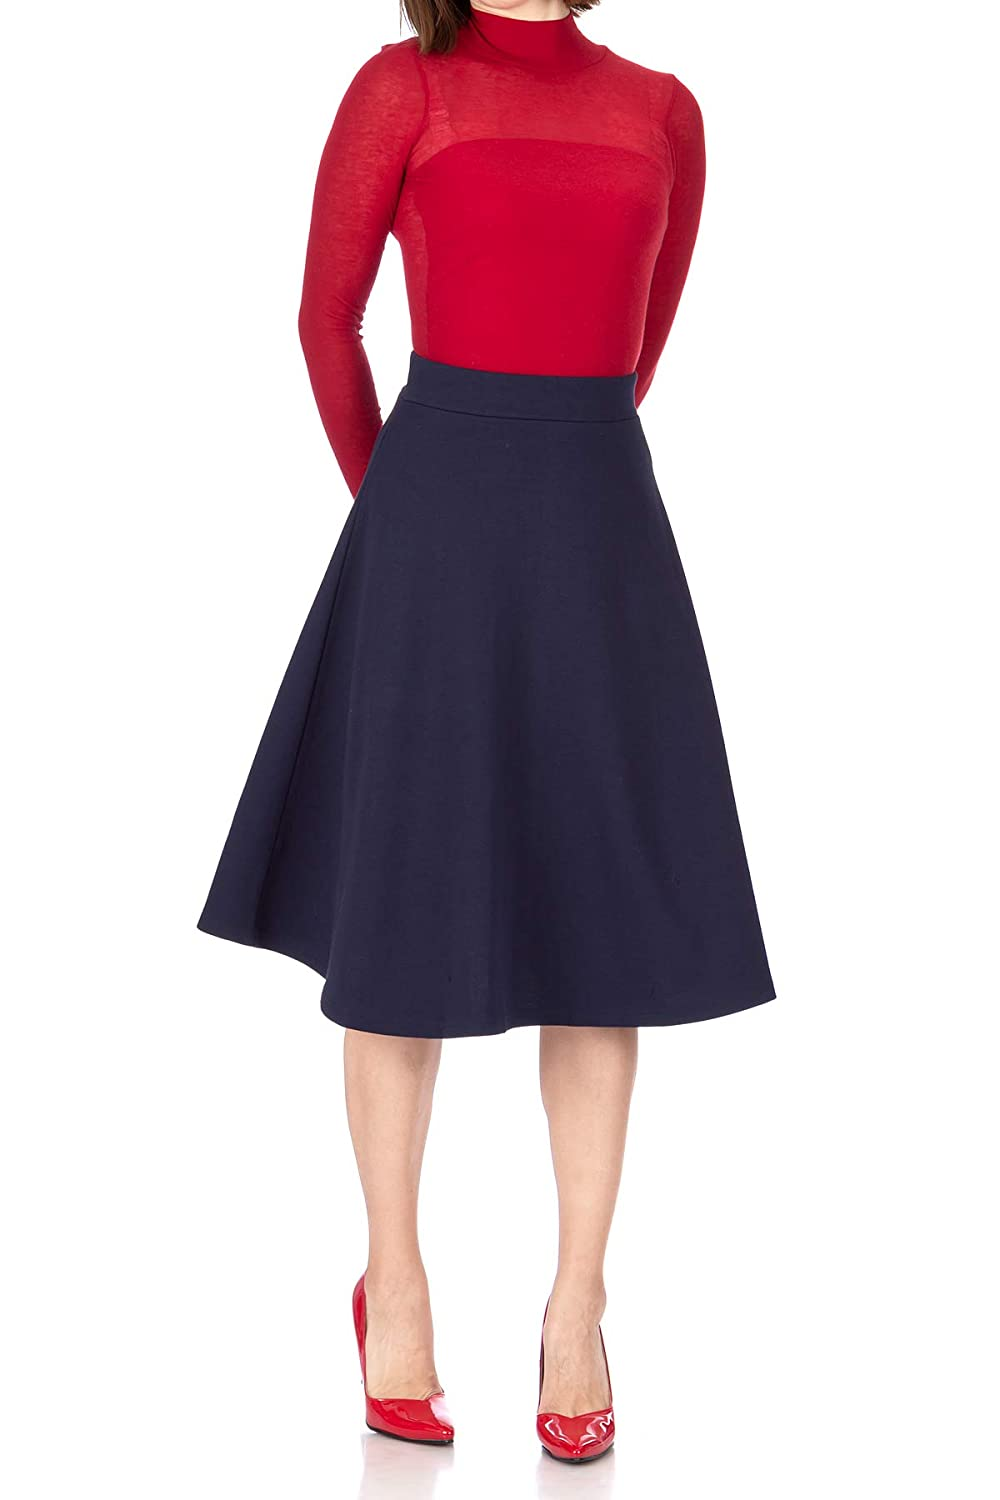 Agent Peggy Carter Costume, Dress, Hats Danis Choice Everyday High Waist A-line Flared Skater Midi Skirt $19.95 AT vintagedancer.com